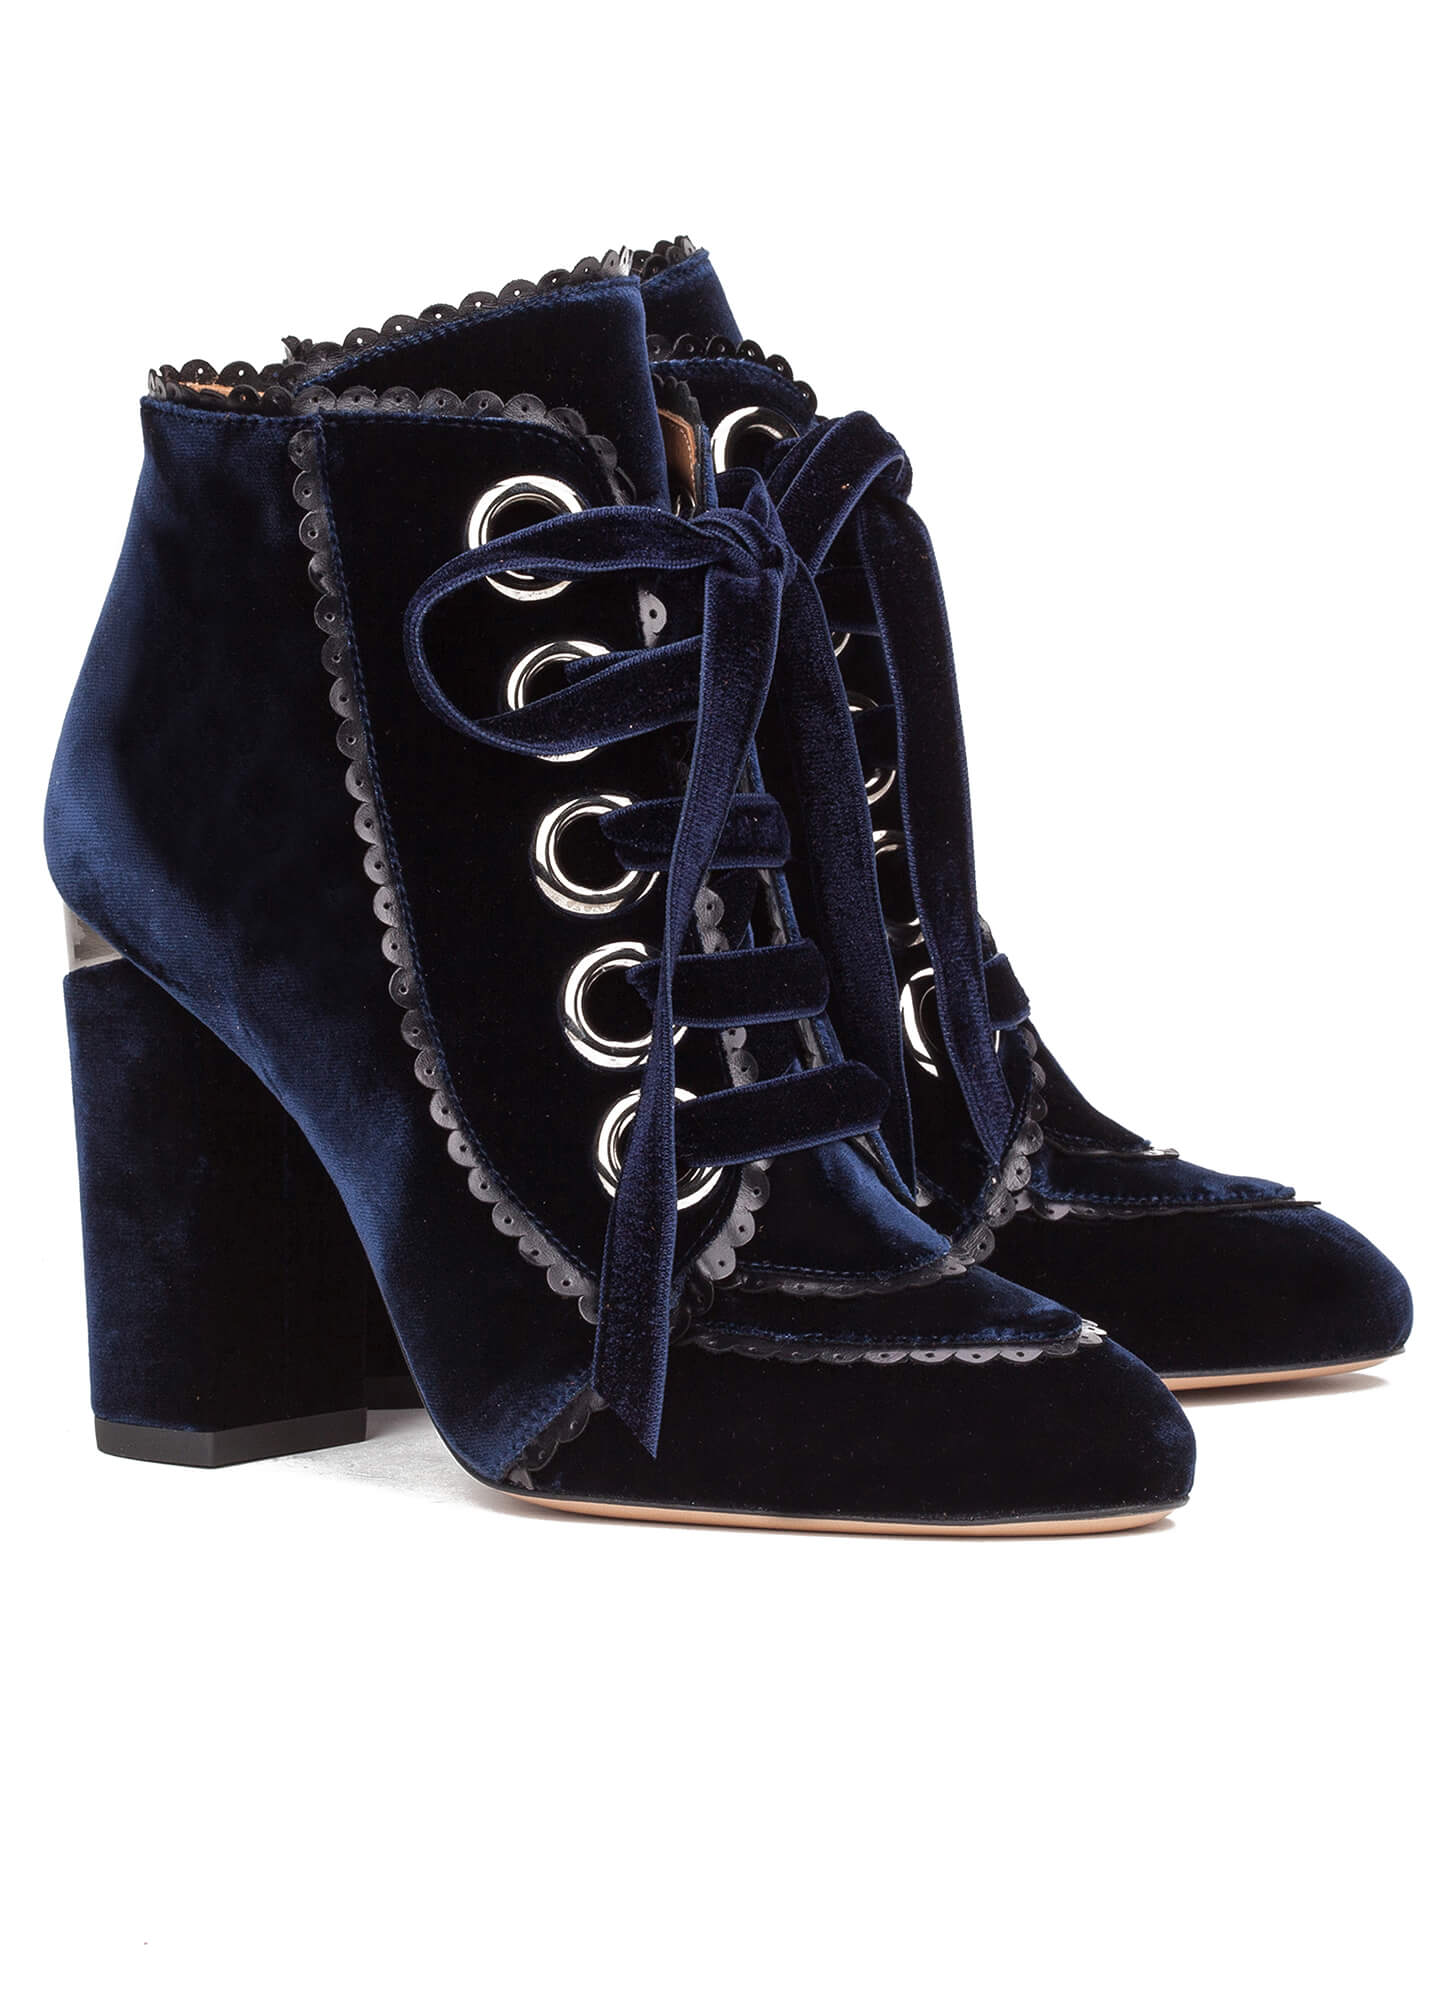 2893f1a184a39 Velvet lace-up heeled ankle boots - online shoe store Pura Lopez ...